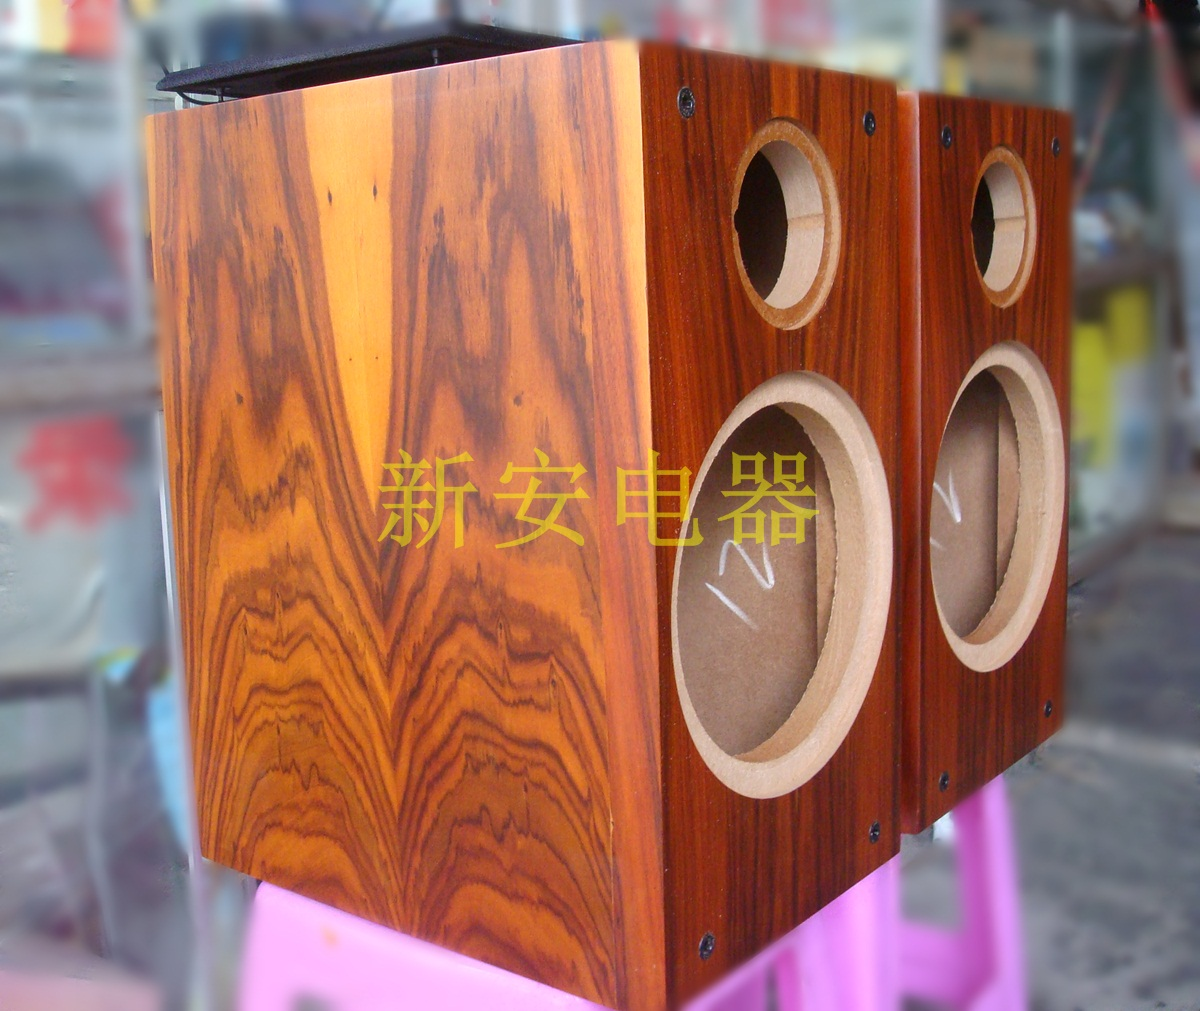 Acidic wood bark 6.5 inch 7 inch two-frequency bookshelf speaker body speaker shell